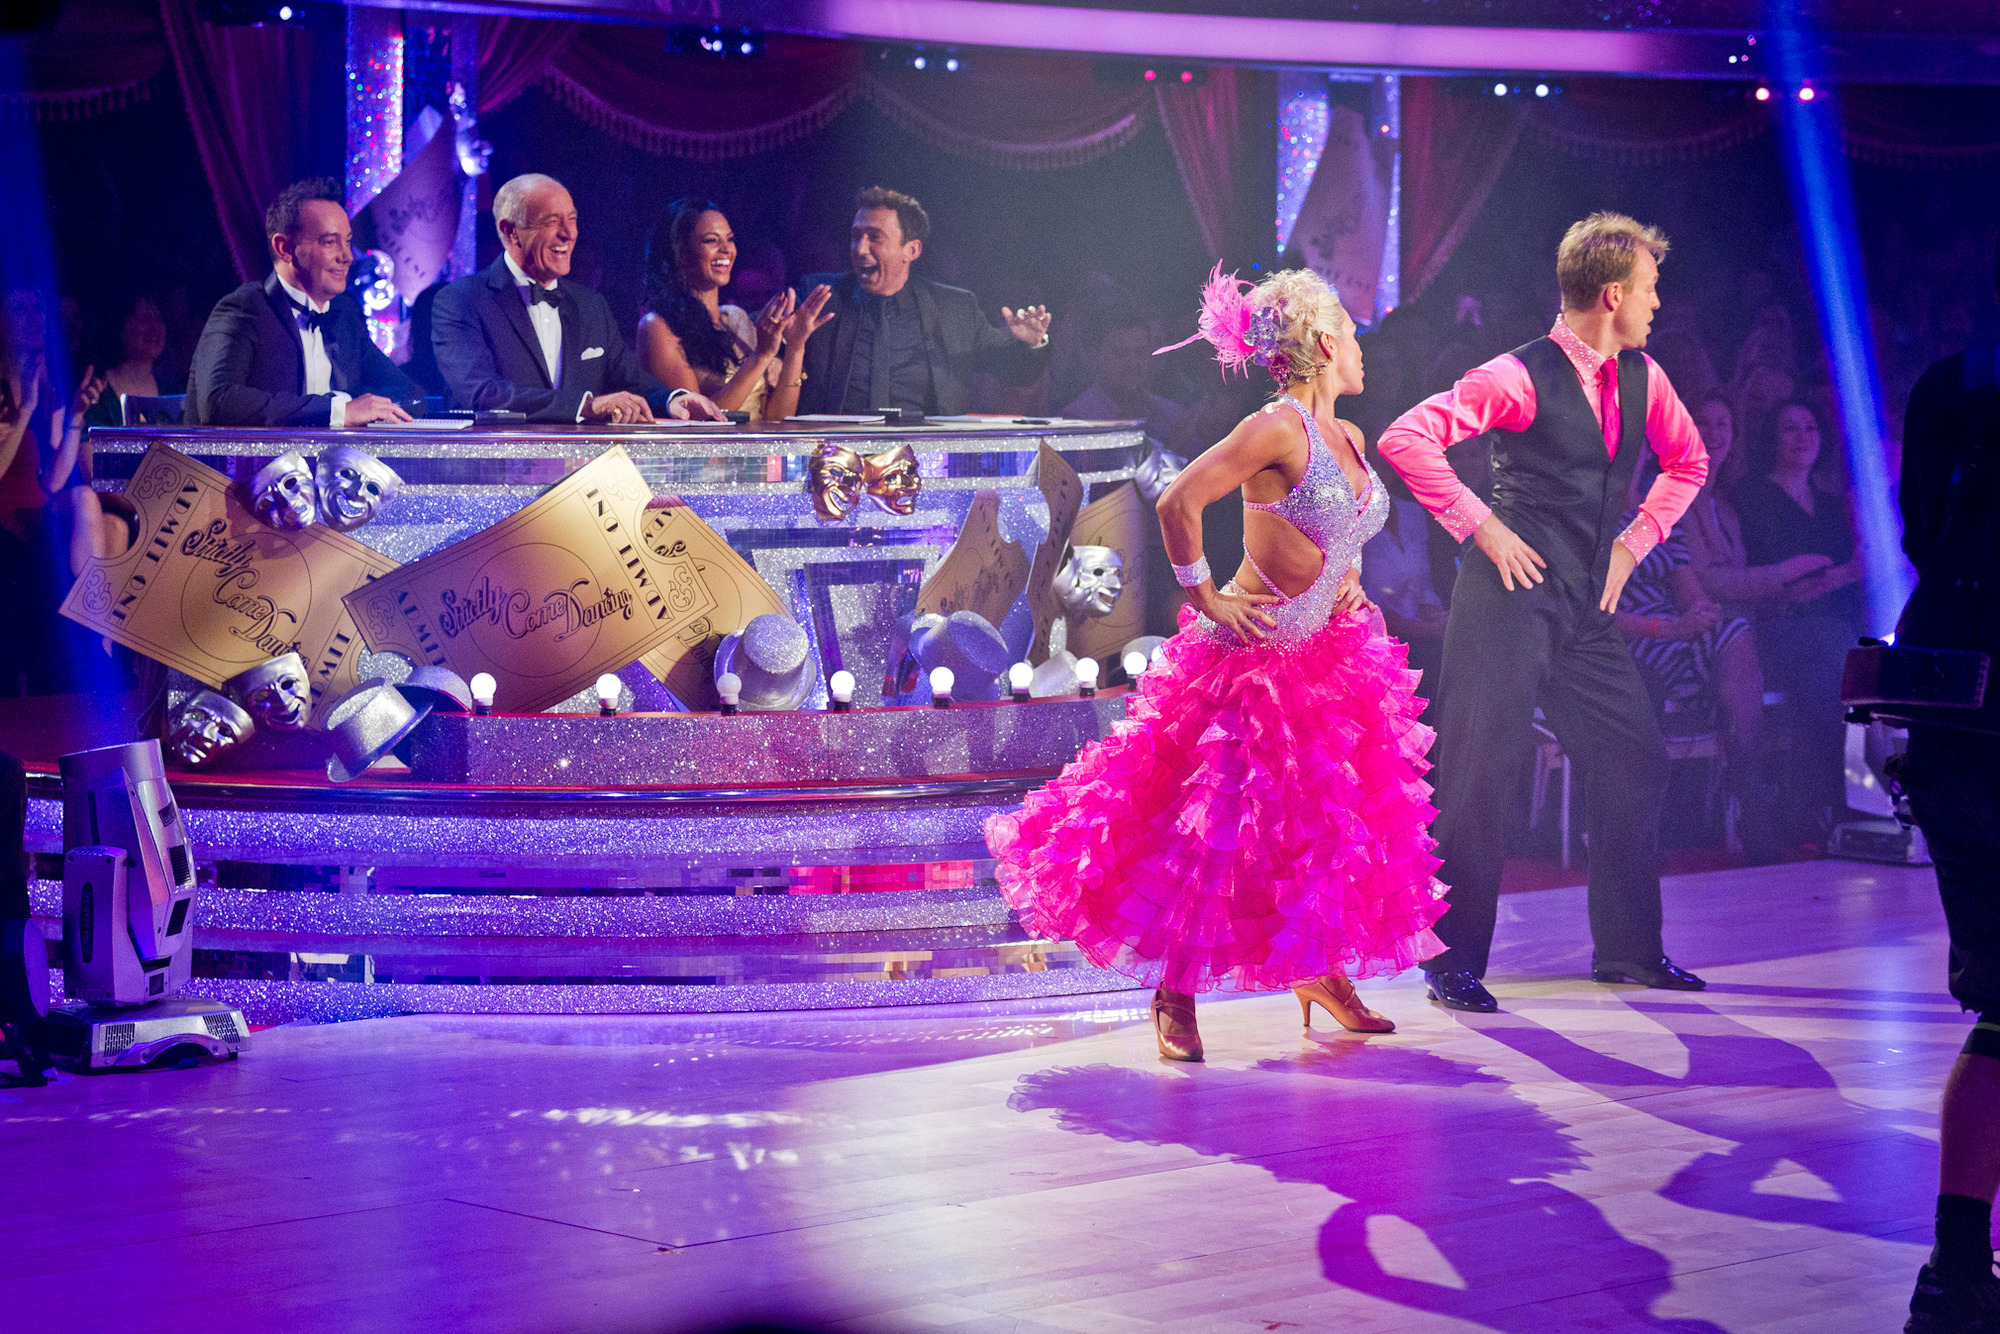 Jason Donovan and Kristina Rihannoff in Strictly